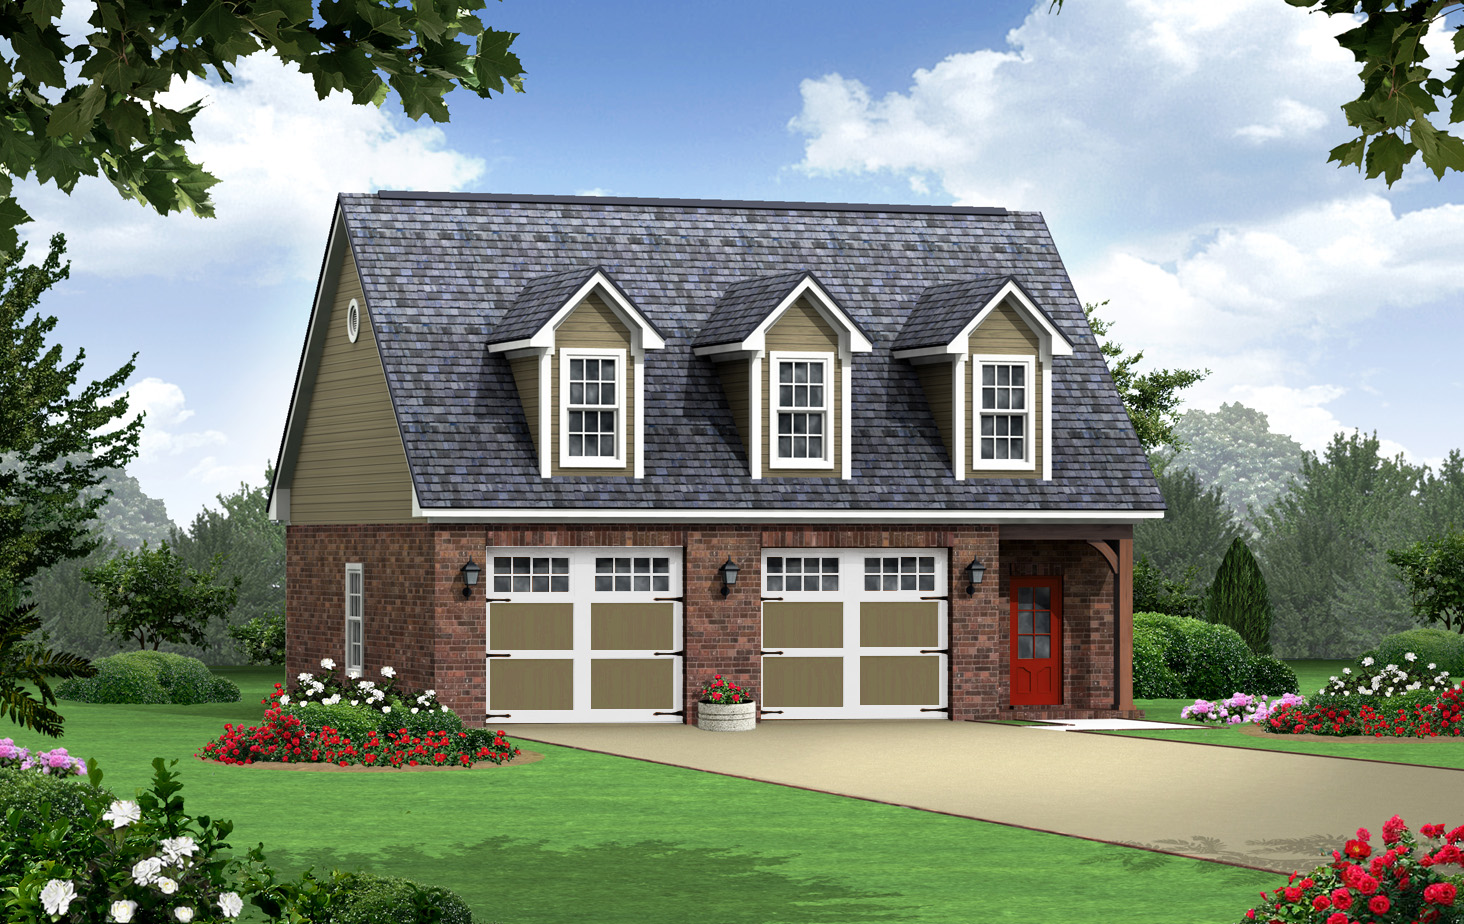 Garage With Additional Living Space - 51138mm